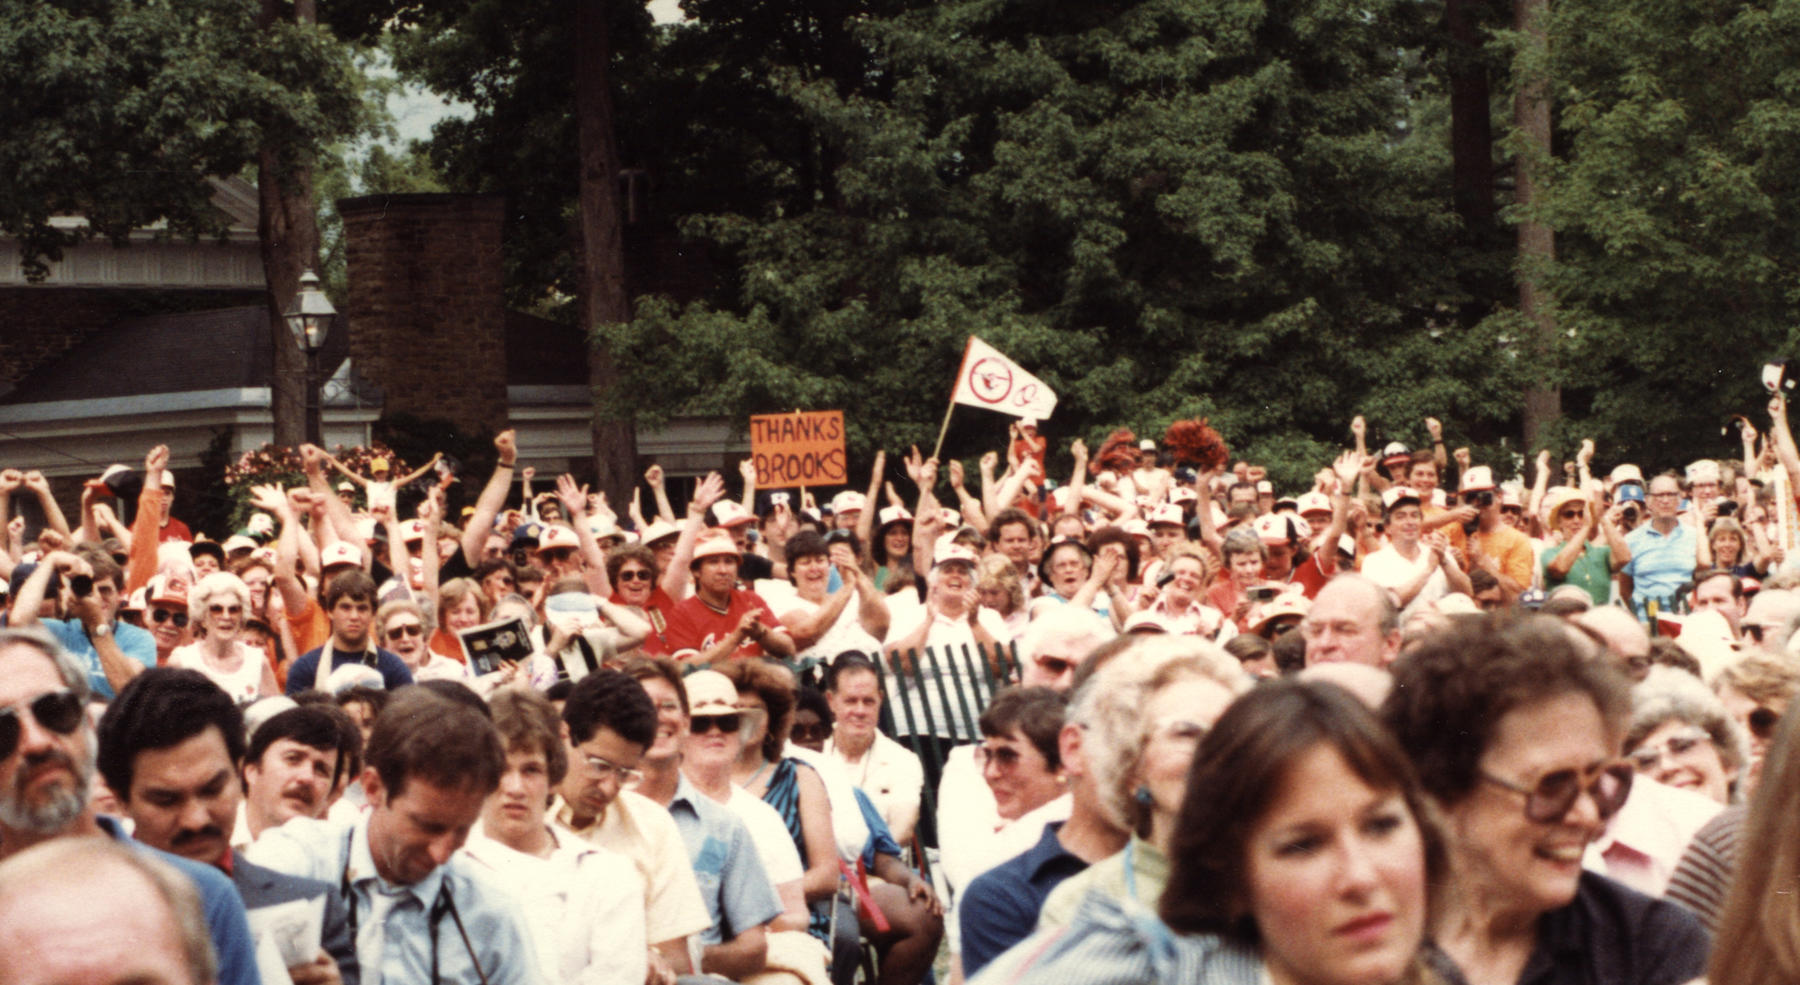 Baltimore Orioles fans came out in droves to watch Brooks Robinson be inducted to the Hall of Fame on July 31, 1983. BL-3540-84 (National Baseball Hall of Fame Library)